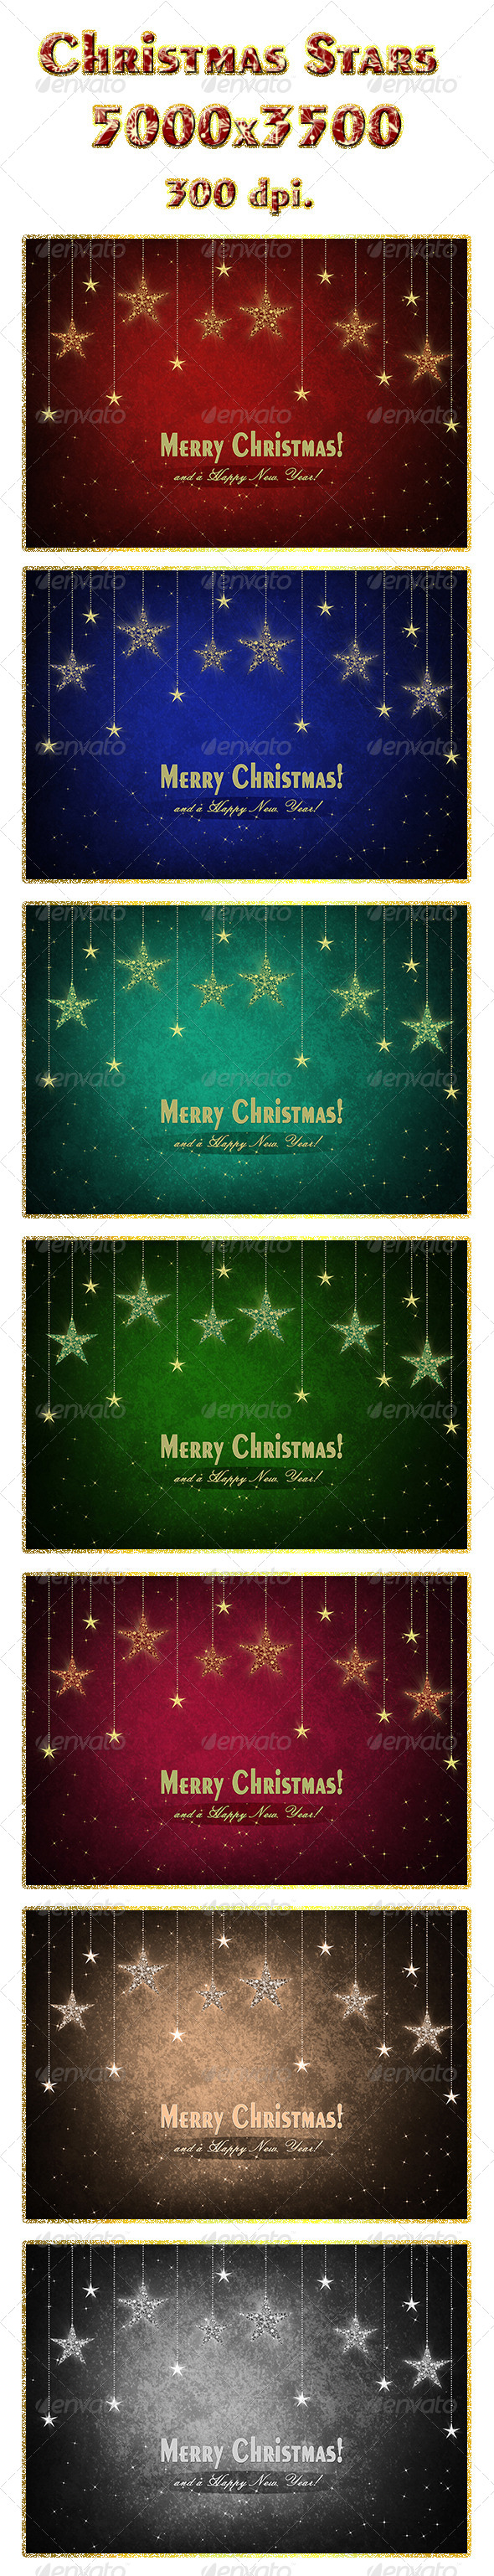 GraphicRiver Christmas Stars 6159266